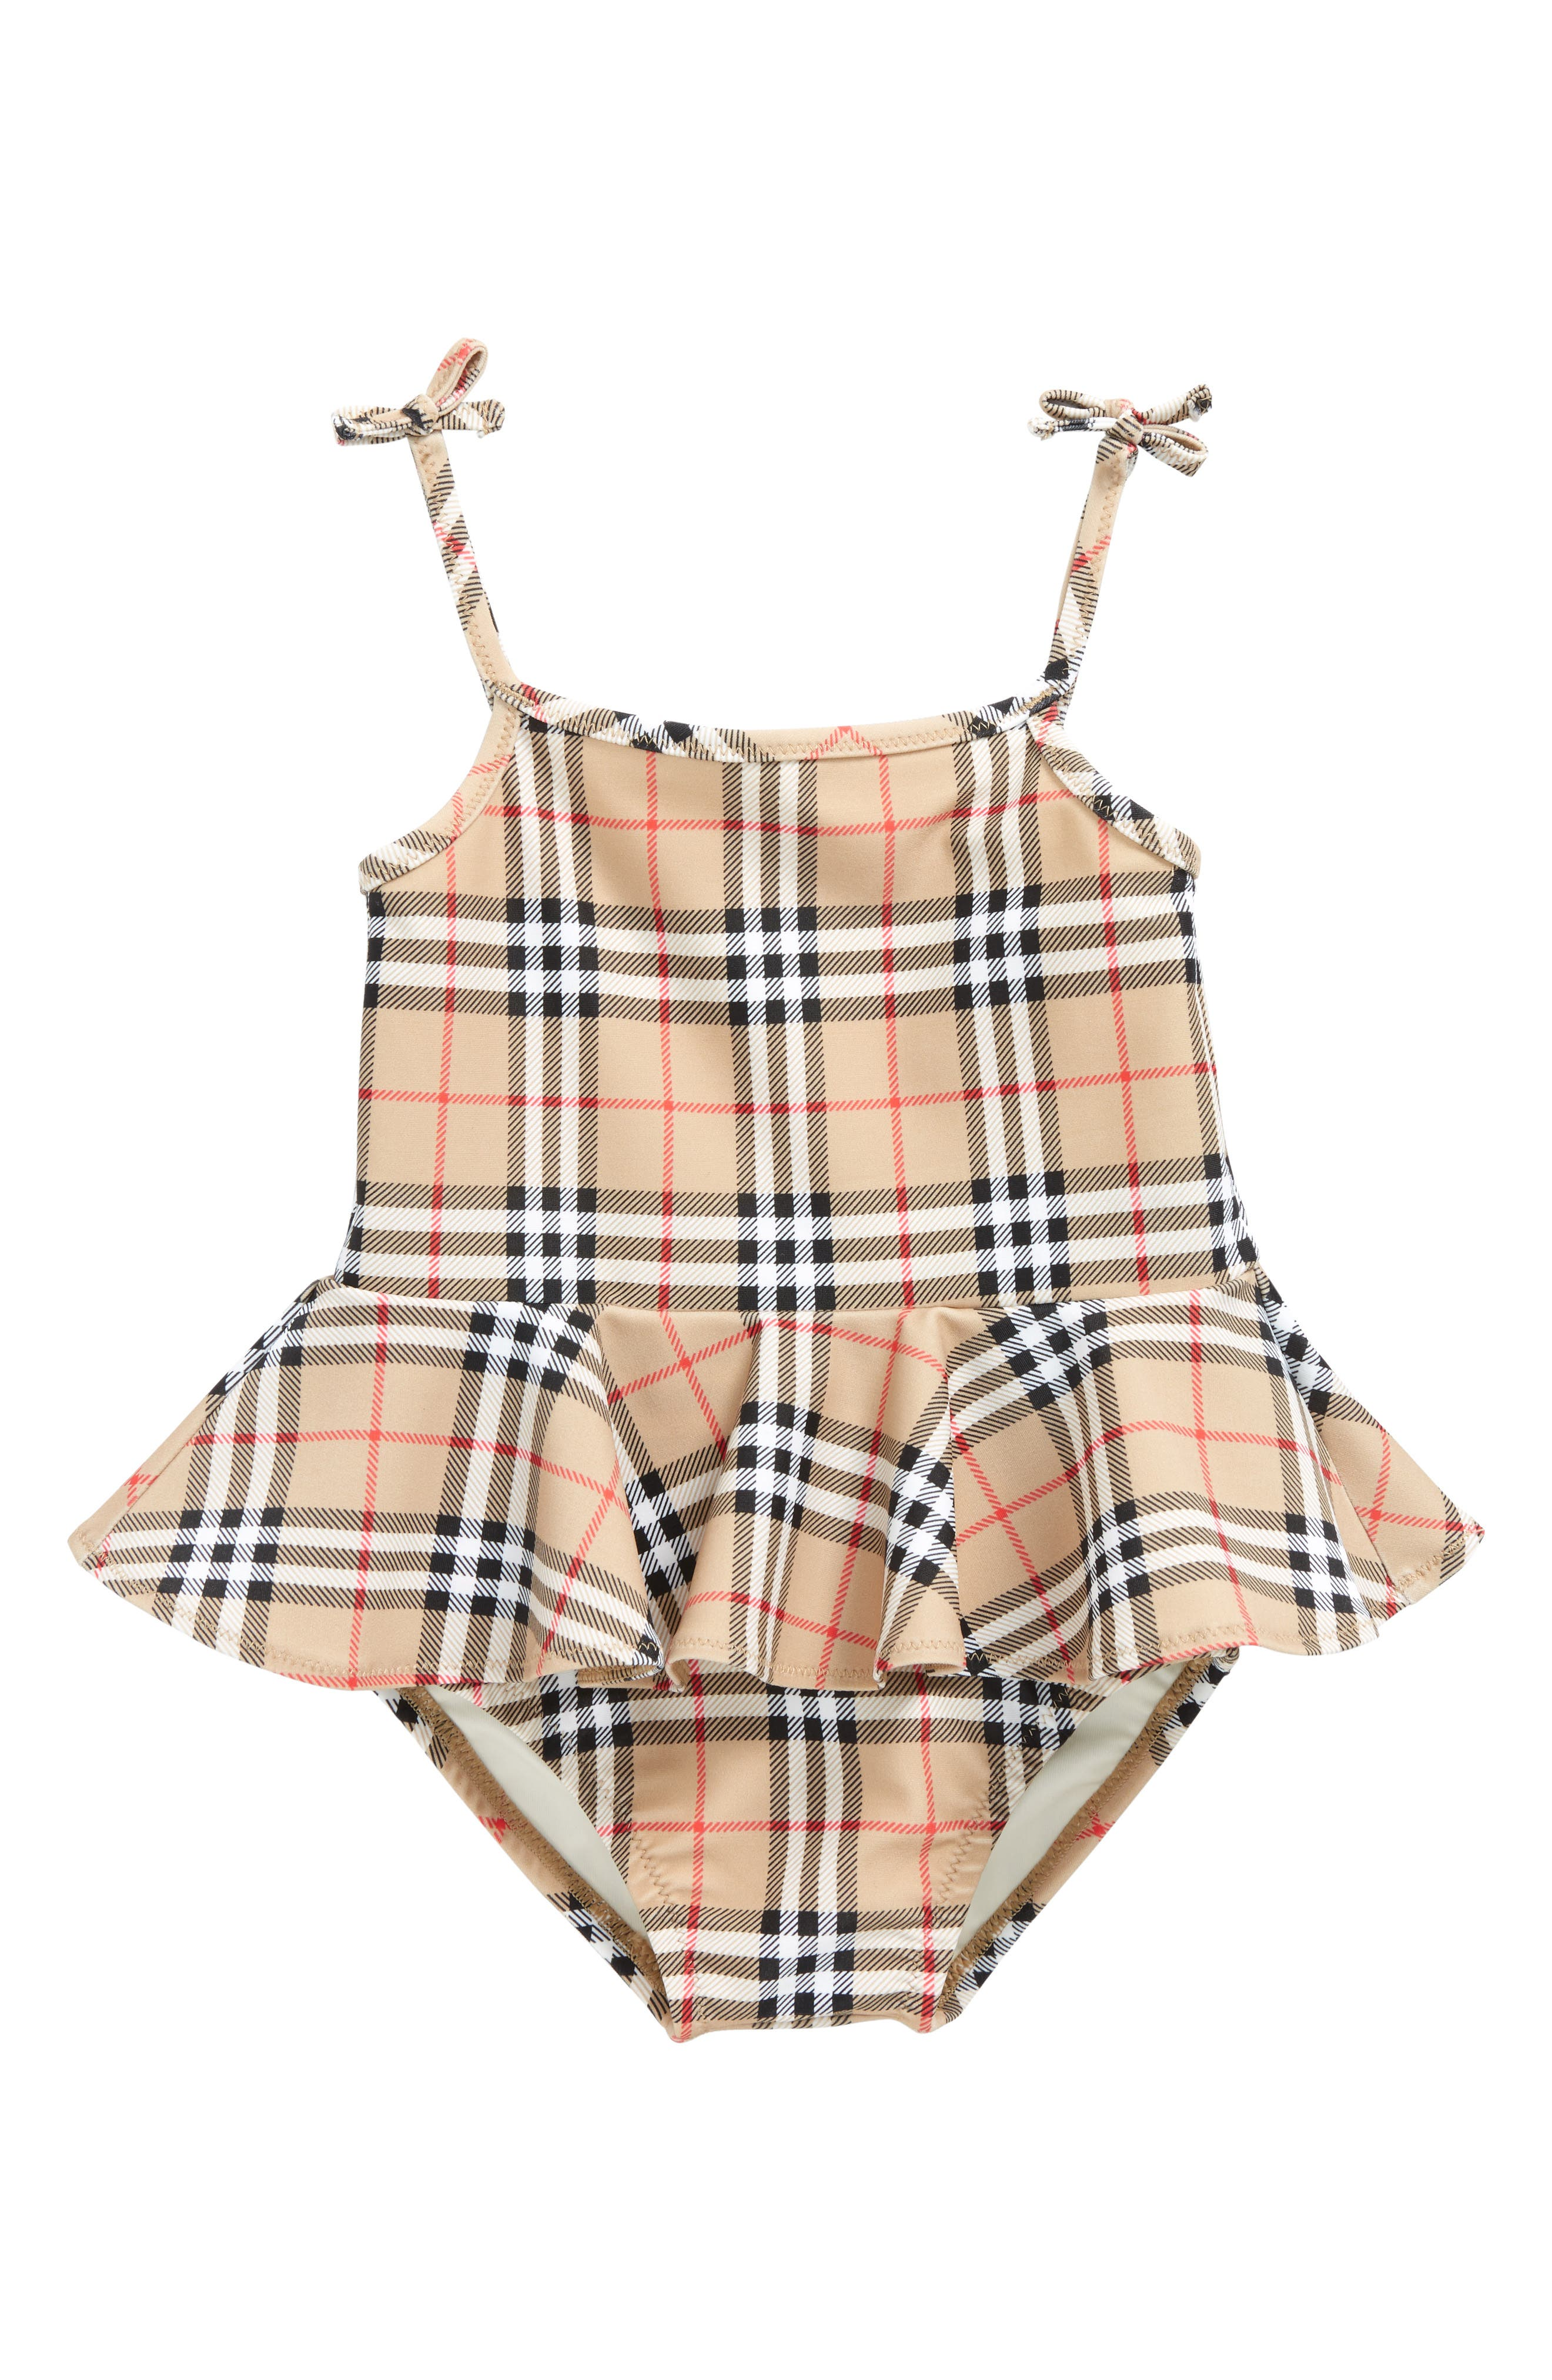 Burberry Luella Check Skirted One-Piece Swimsuit (Baby Girls)